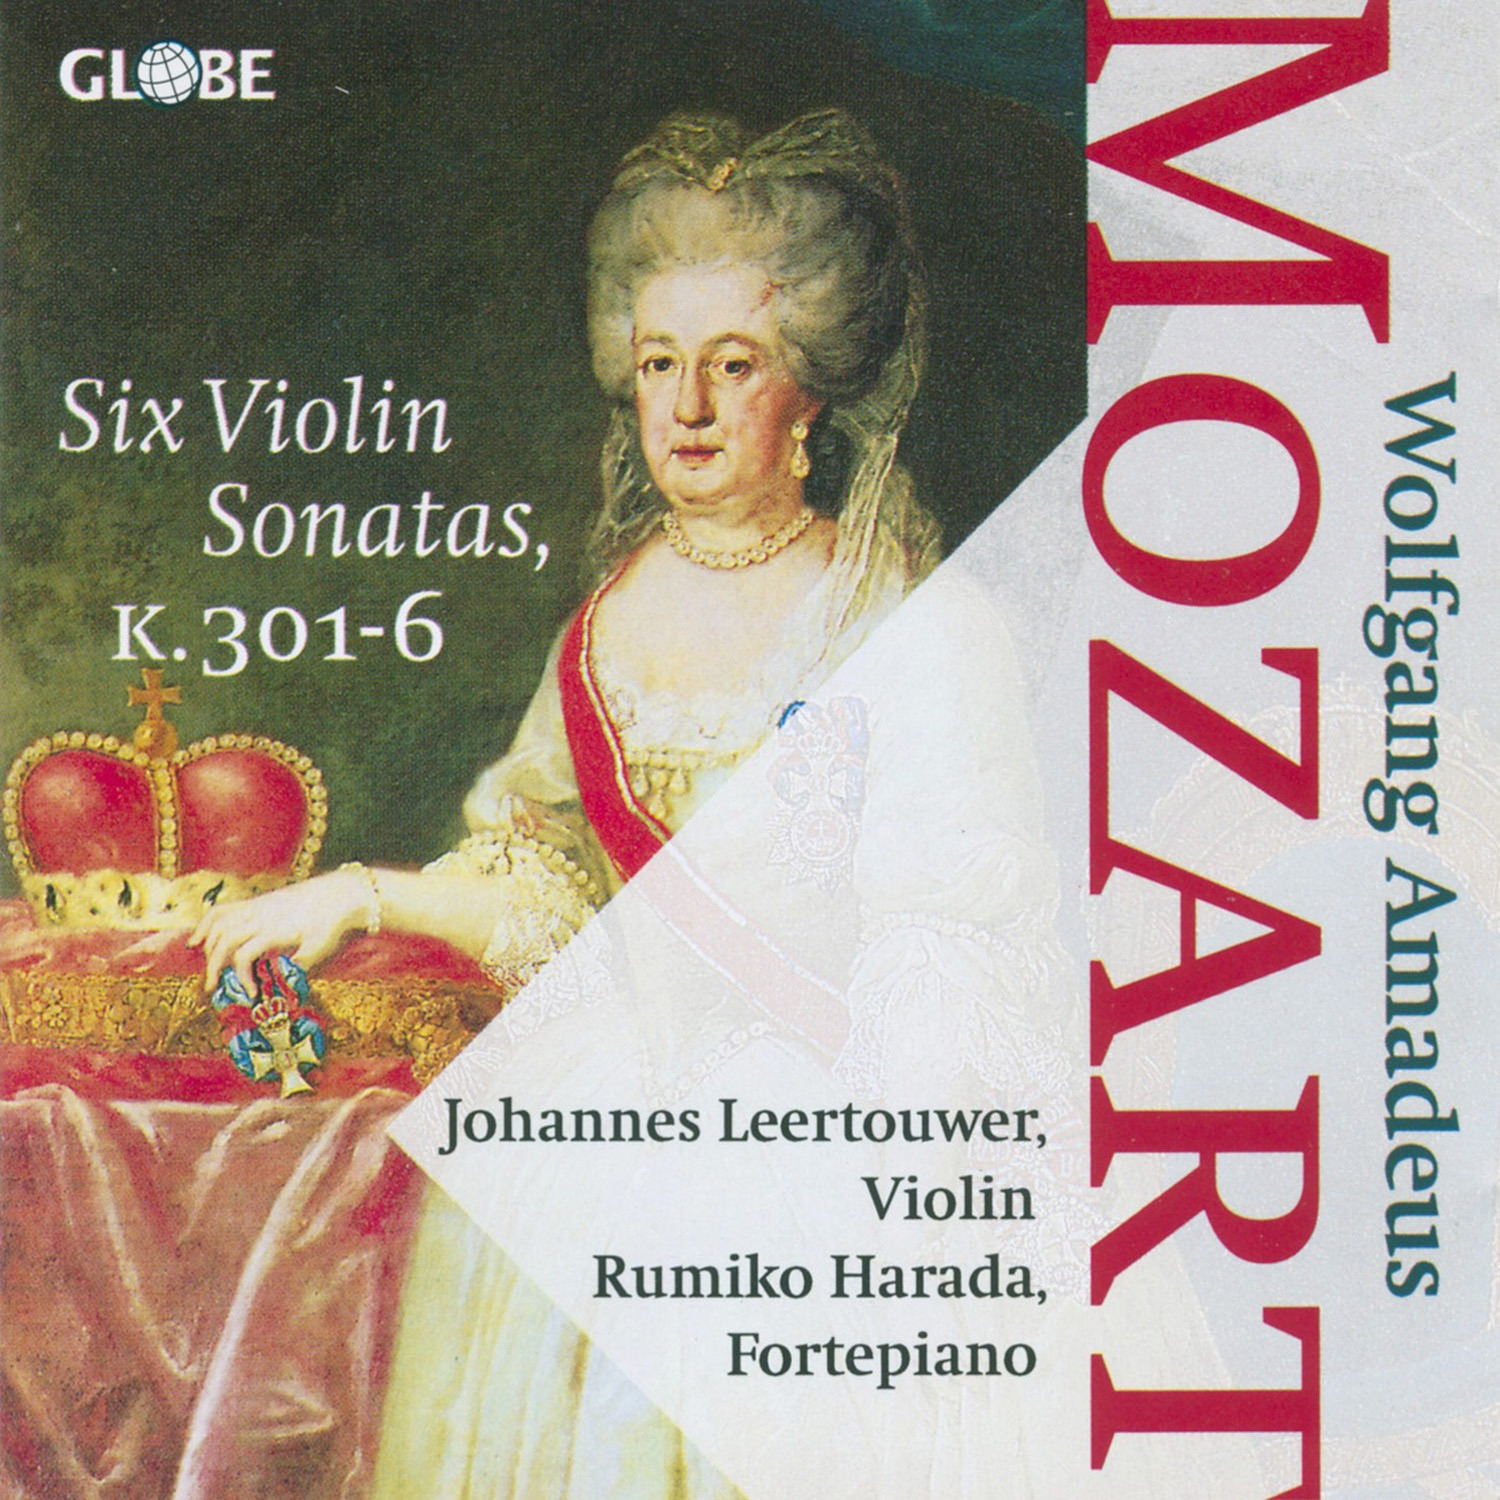 Sonata for Piano and Violin in D Major, K. 306: II. Andantino cantabile